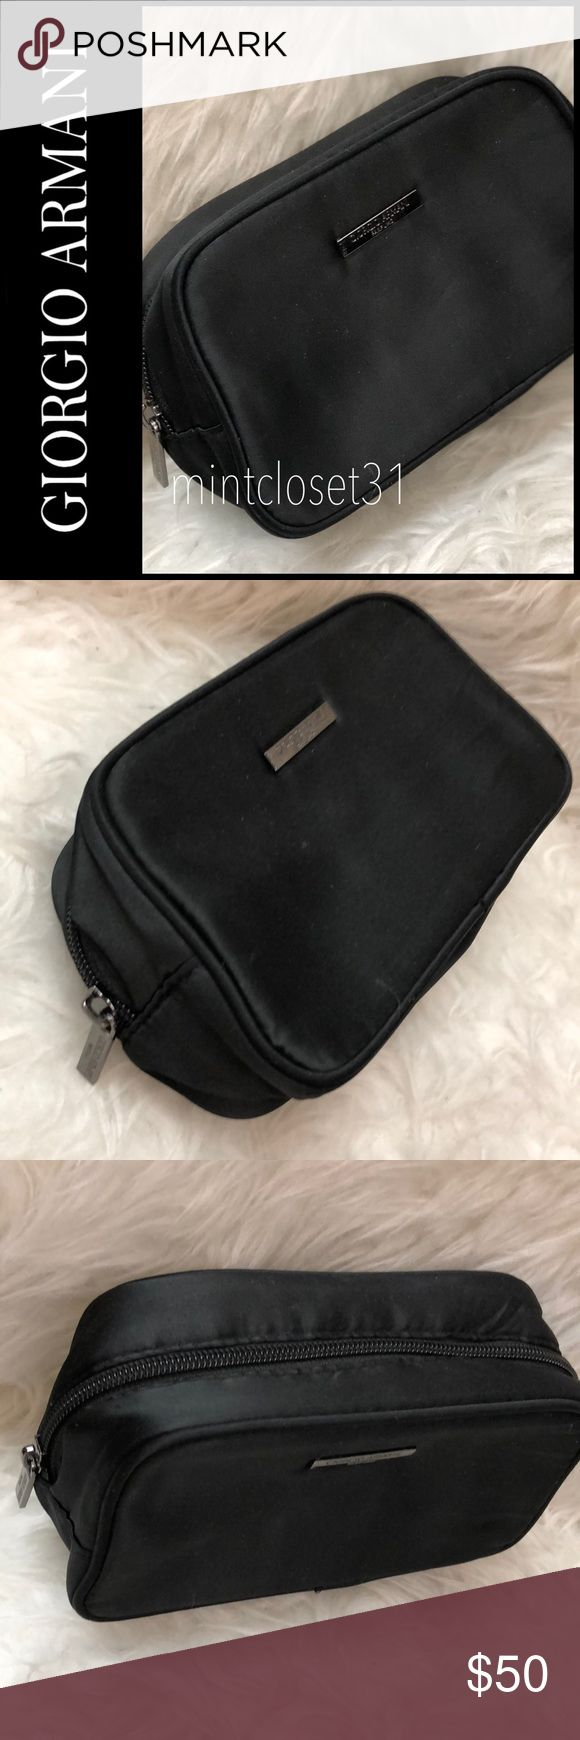 Giorgio Armani Traveler Pouch Giorgio Armani Designer Pouch in Minimalist Black With Gunmetal Tone Hardware! Use as a Traveler Essential Bag or a Cosmetic Case! Top Zipper Closure with Lined Interior and Slip Pockets! Used in Excellent Condition! Giorgio Armani Bags Cosmetic Bags & Cases